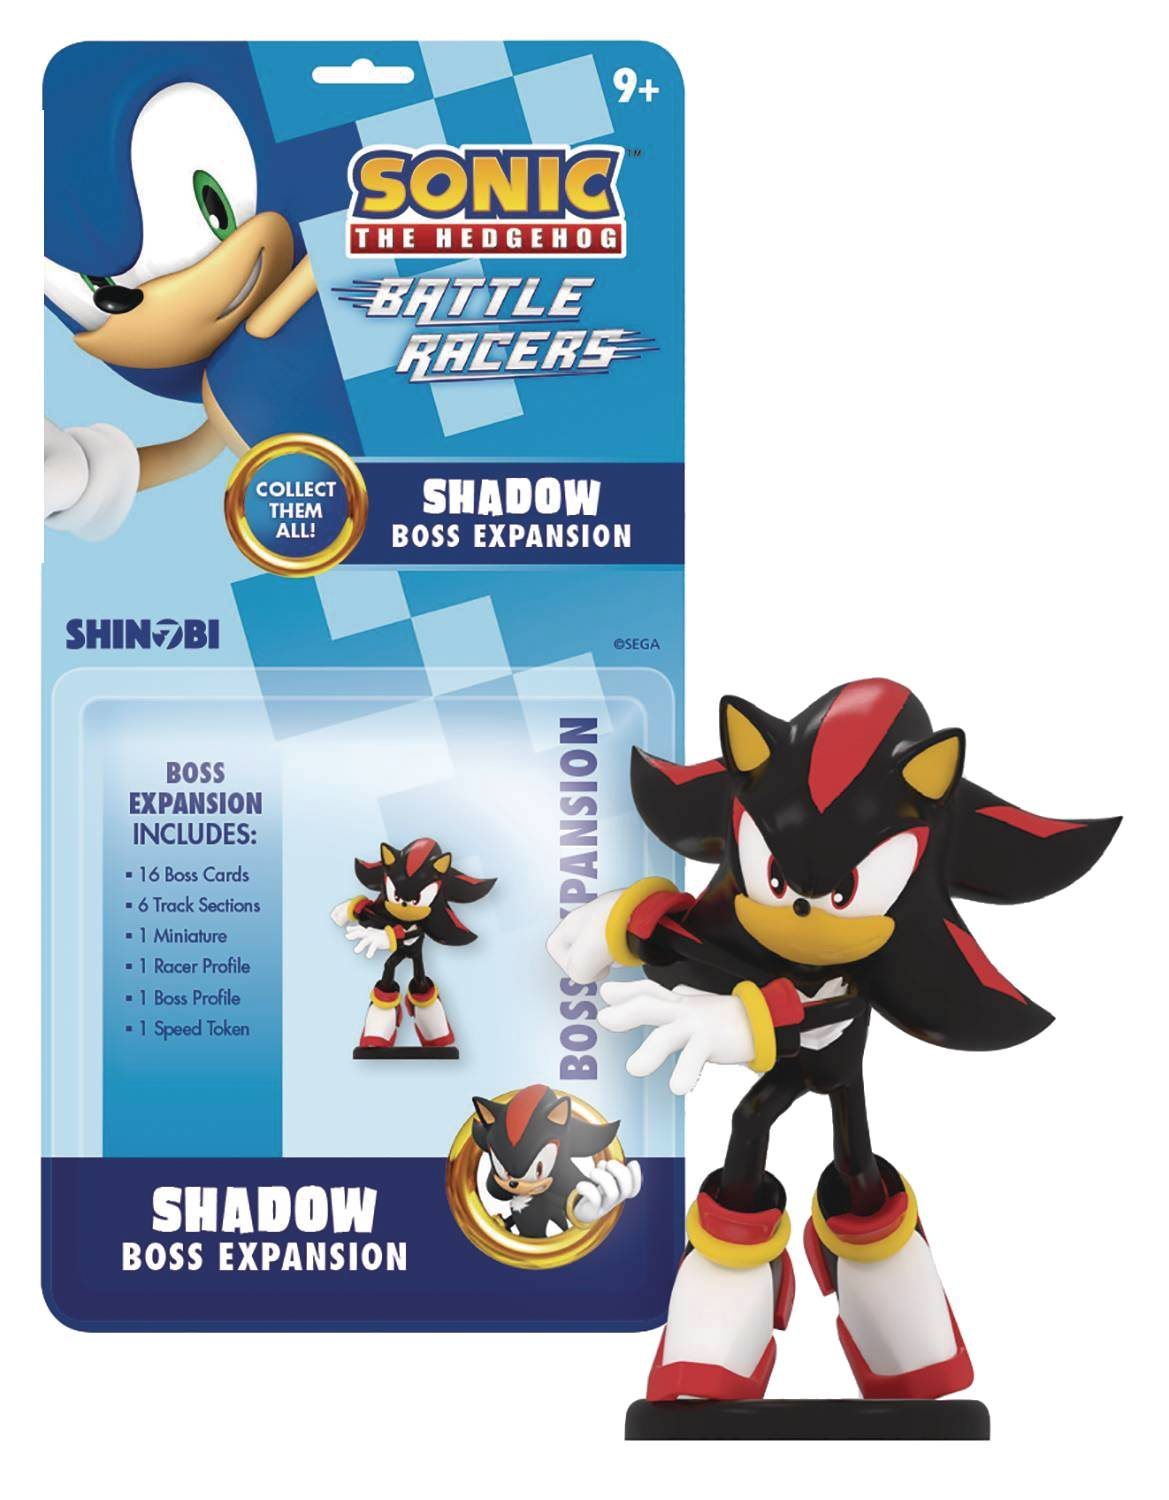 SONIC THE HEDGEHOG BATTLE RACERS BOSS EXP SHADOW